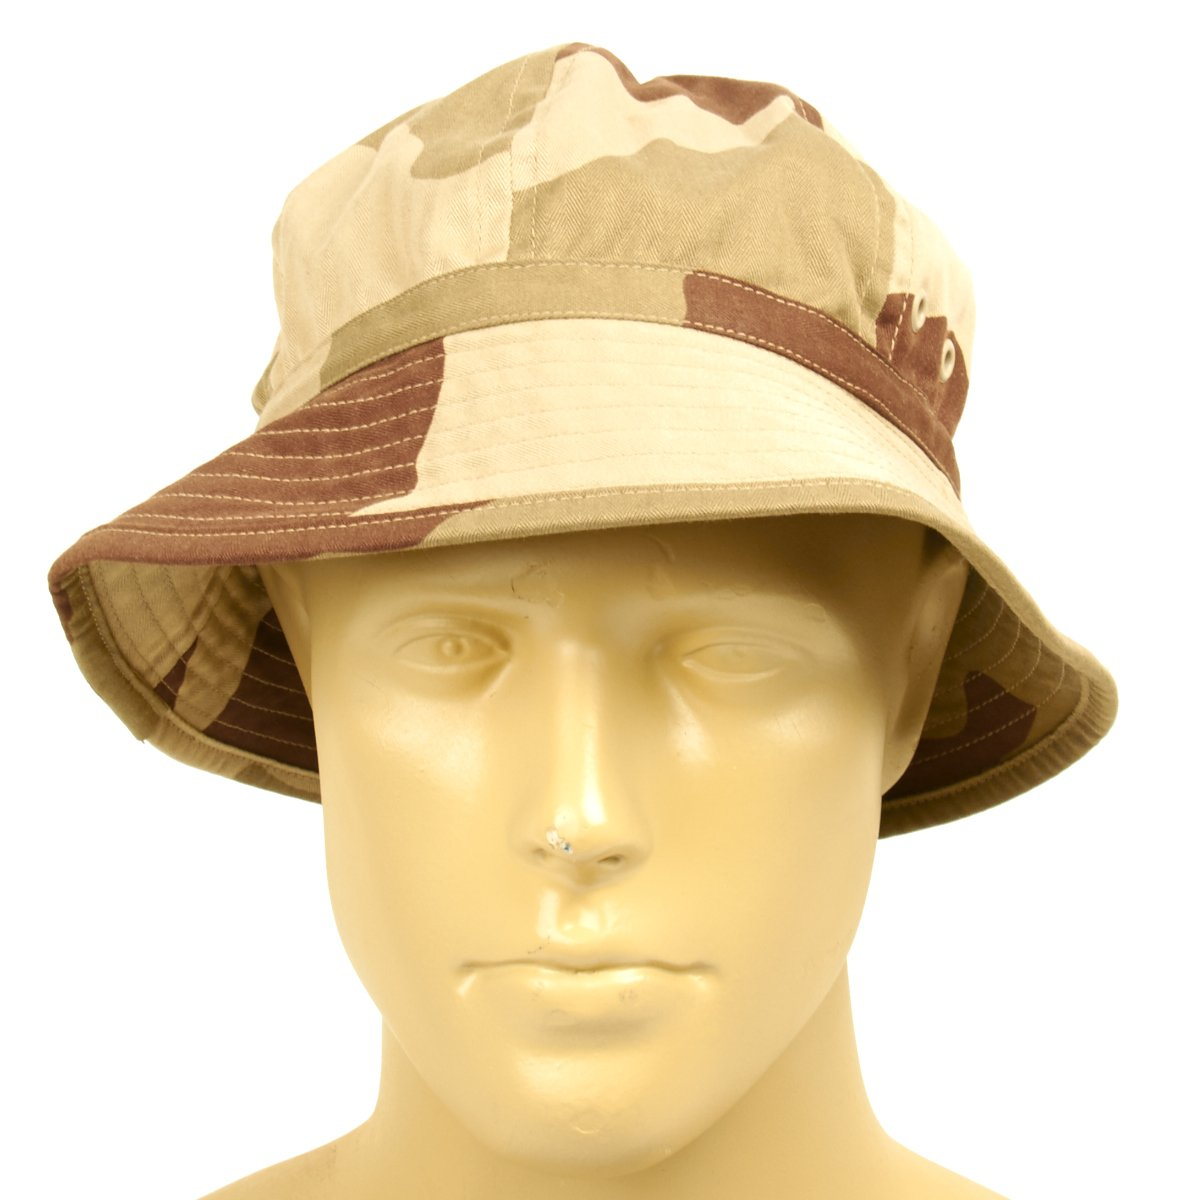 dd7b76cd9069d Prev · Original French Foreign Legion Desert Camouflage Boonie Sun Hat. Tap  to expand